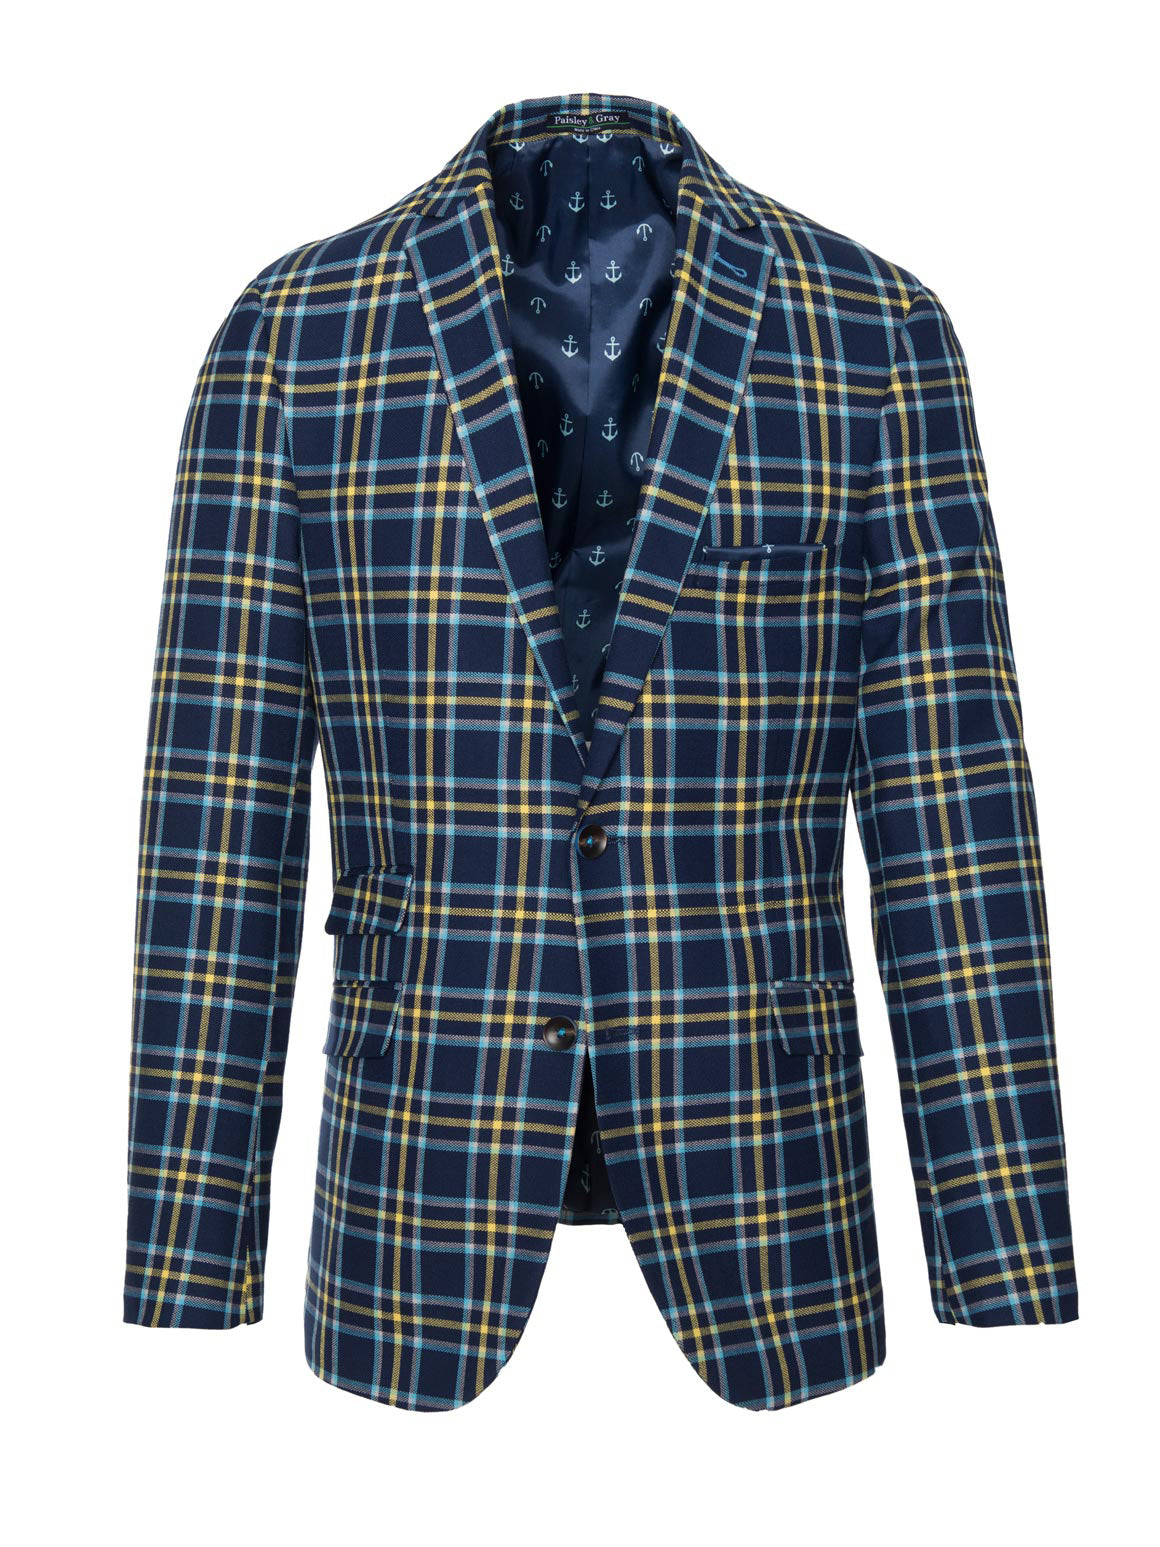 paisley & gray blue & yellow plaid slim fit notch lapel suit jacket 2124J ultramarine anchor lining and pocket square brown buttons flap pockets